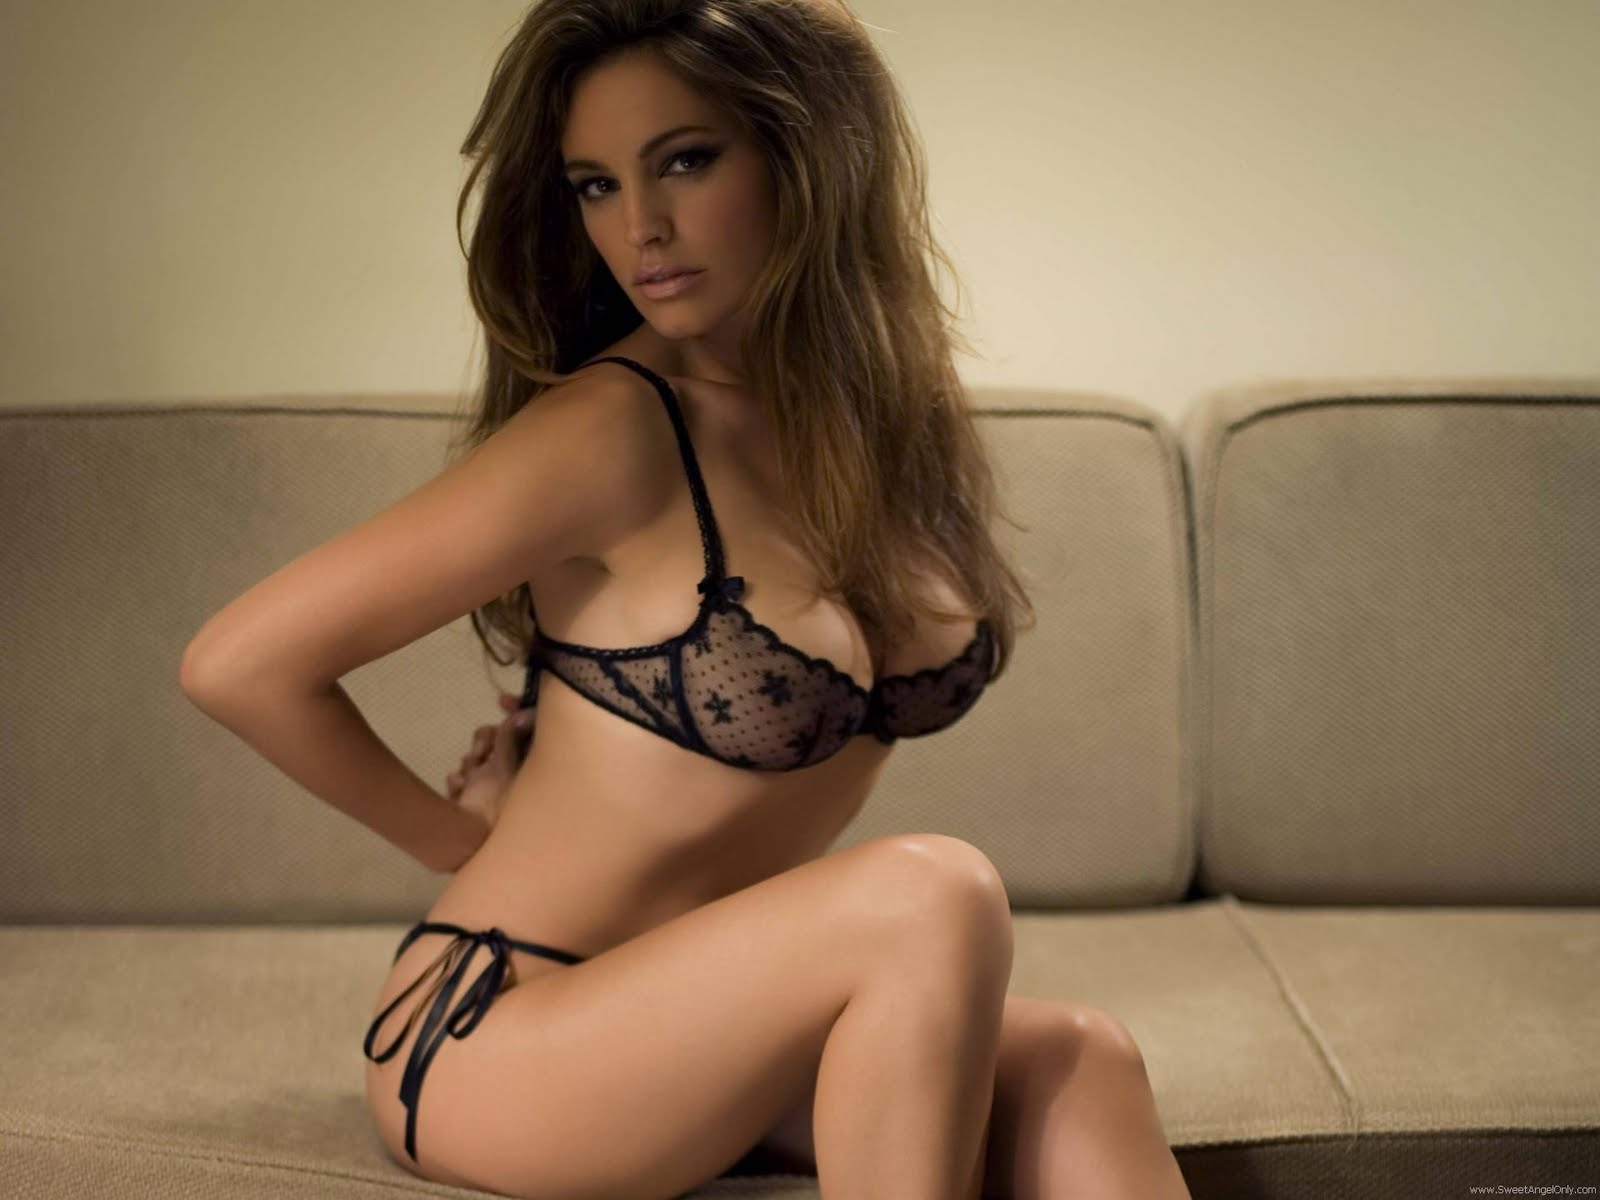 http://2.bp.blogspot.com/-f7br9hUvUcg/TeD5y6aovvI/AAAAAAAAFpI/_2CVJJsnFVw/s1600/kelly_brook_a_HD_Wallpaper_101.jpg